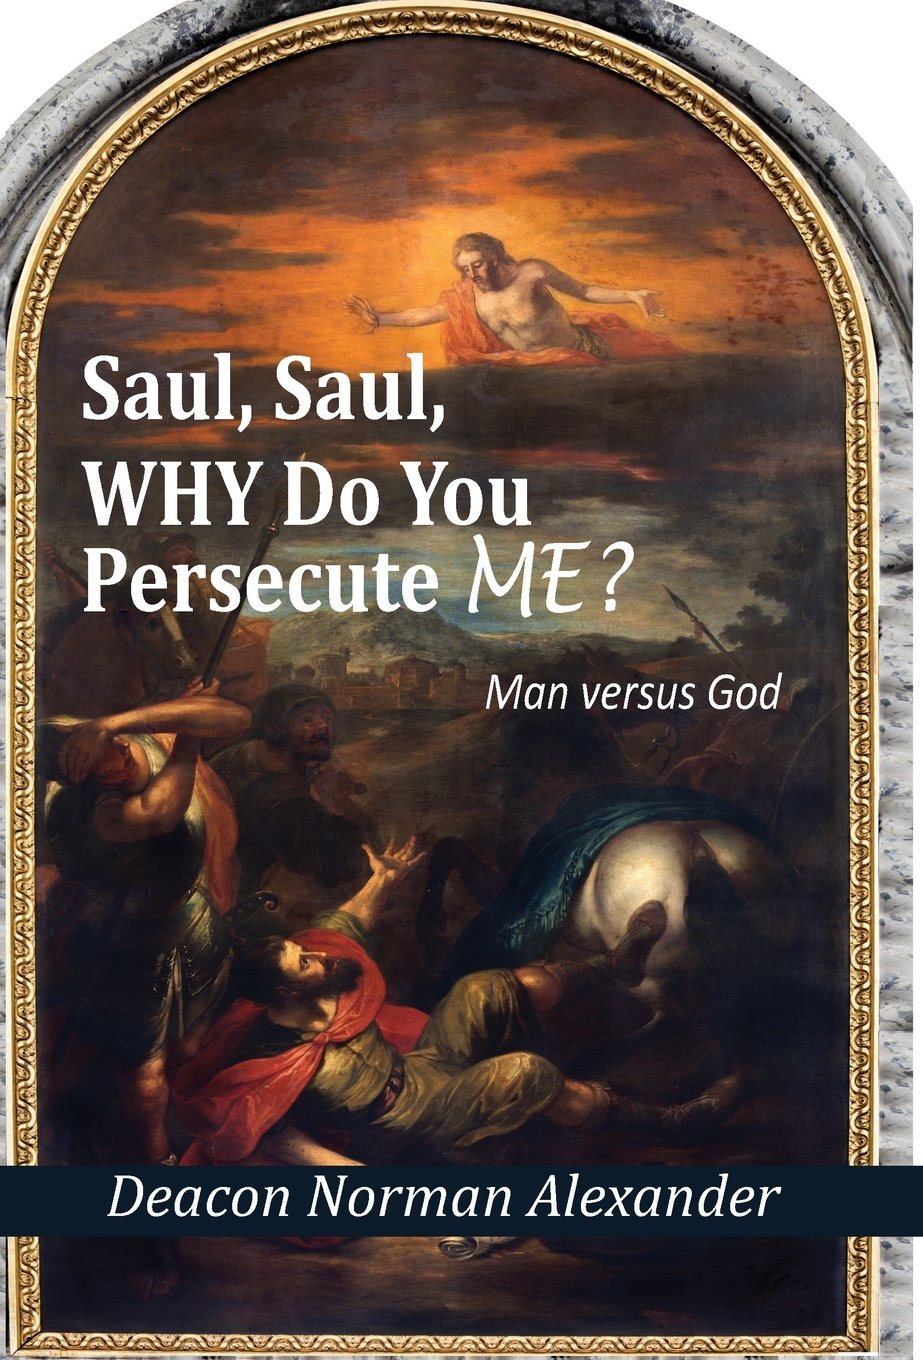 Download Saul, Saul, Why Do You Persecute Me?: Man versus God PDF